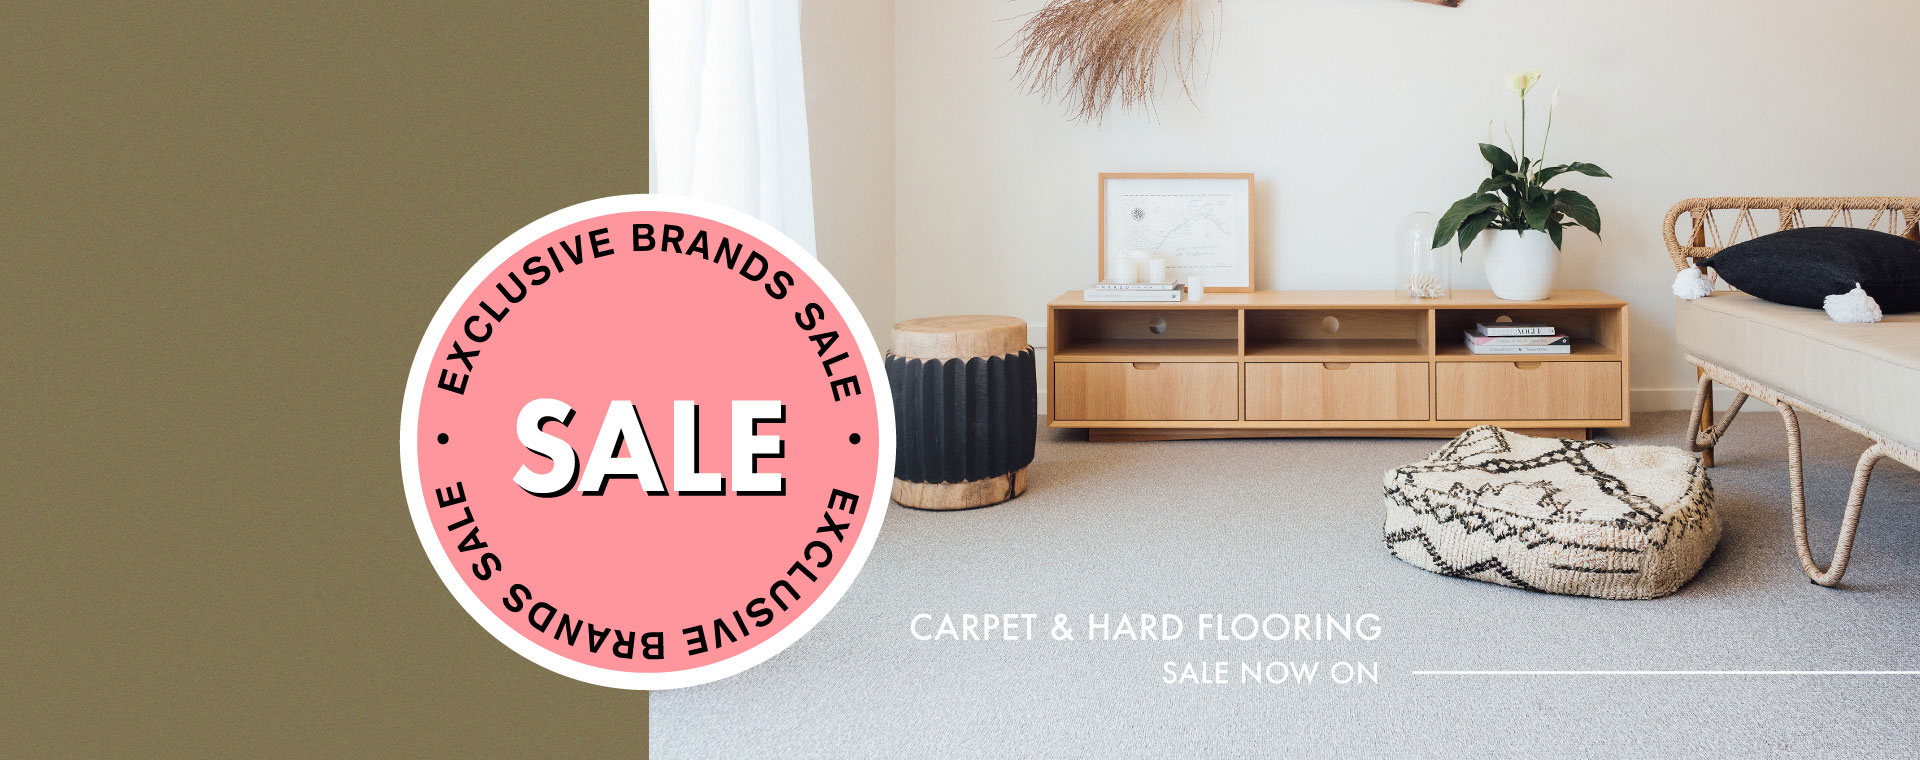 Flooring Xtra Exclusive Brands Sale 2020 now on banner